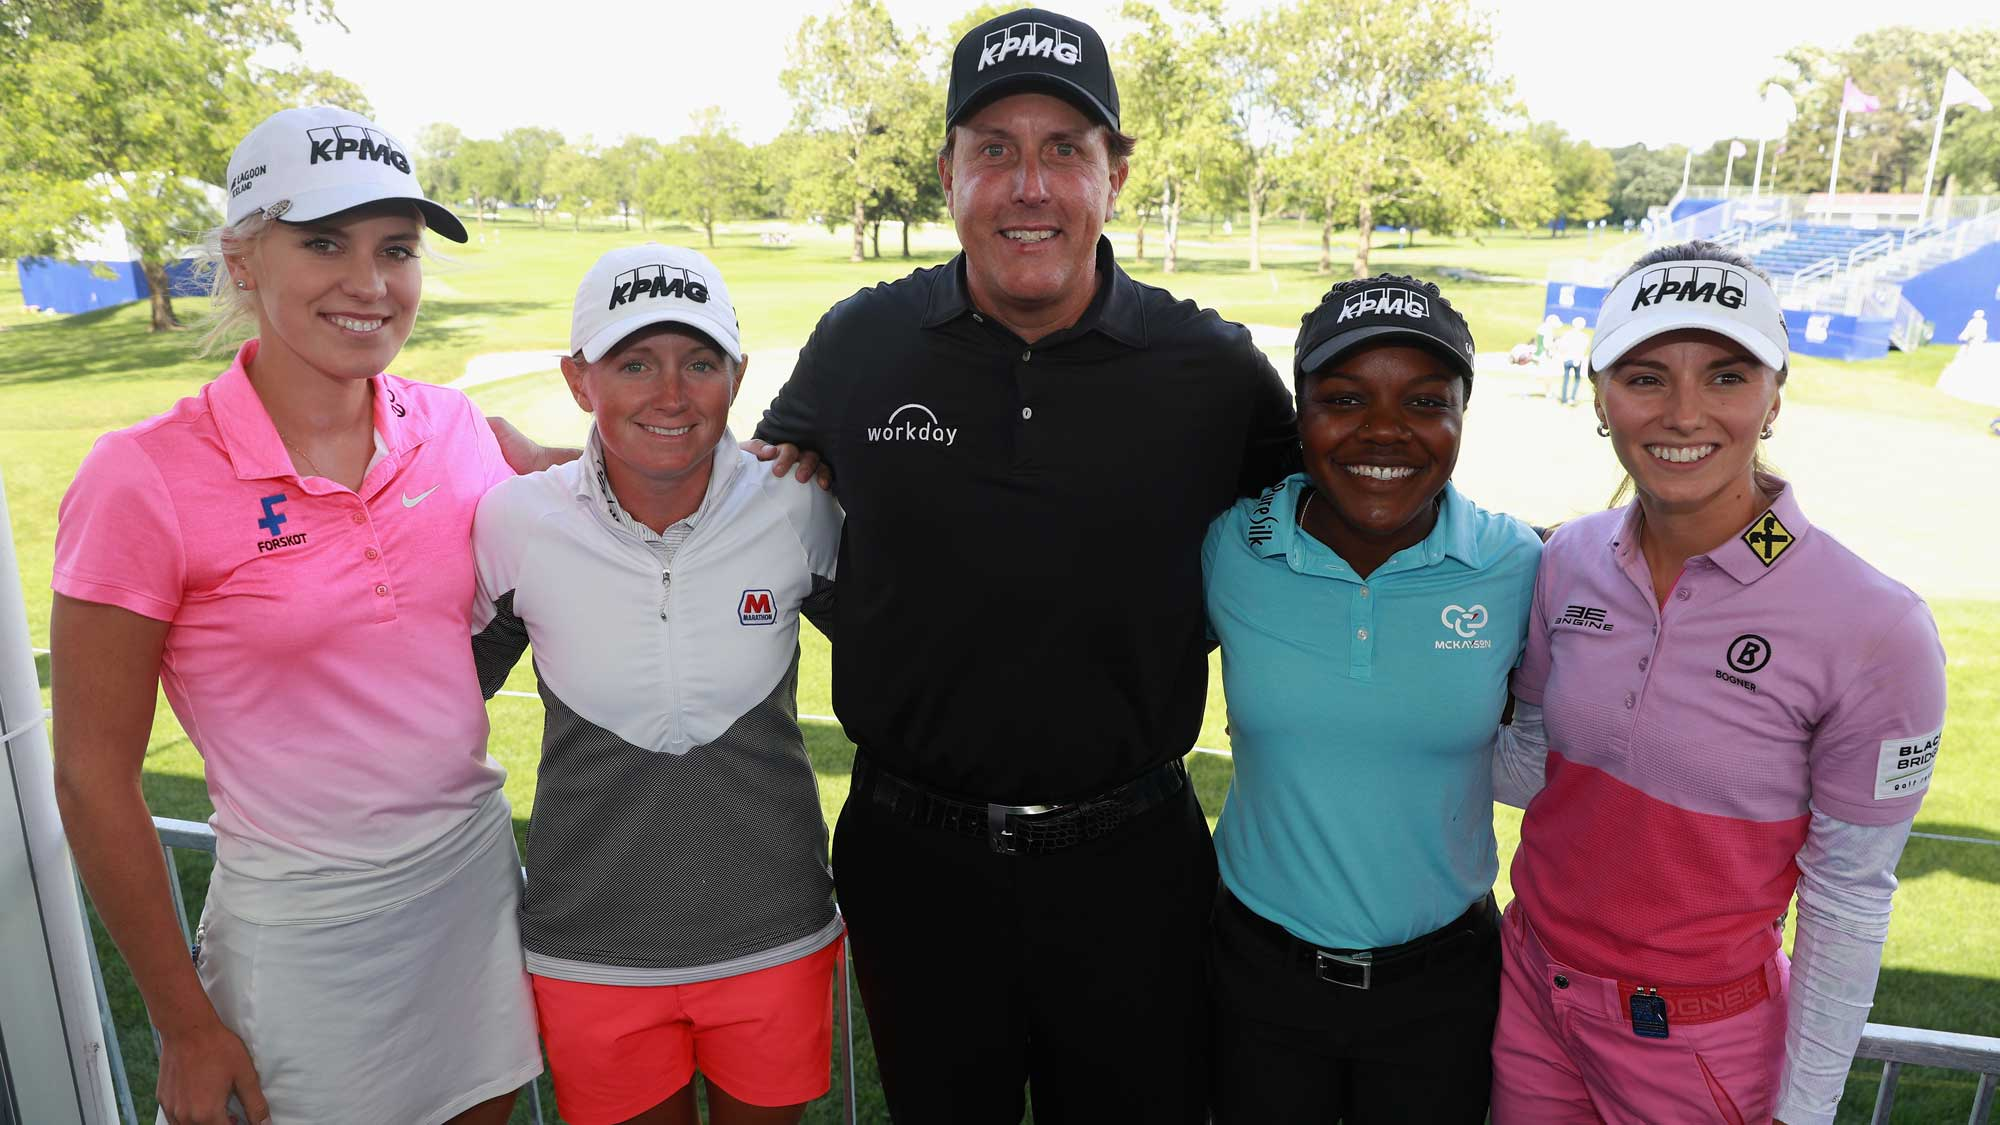 (L-R) Olafia Kristinsdottir, Stacy Lewis, Phil Mickelson, Mariah Stackhouse and Klara Spilkova pose together prior to the start of the 2017 KPMG Women's PGA Championship